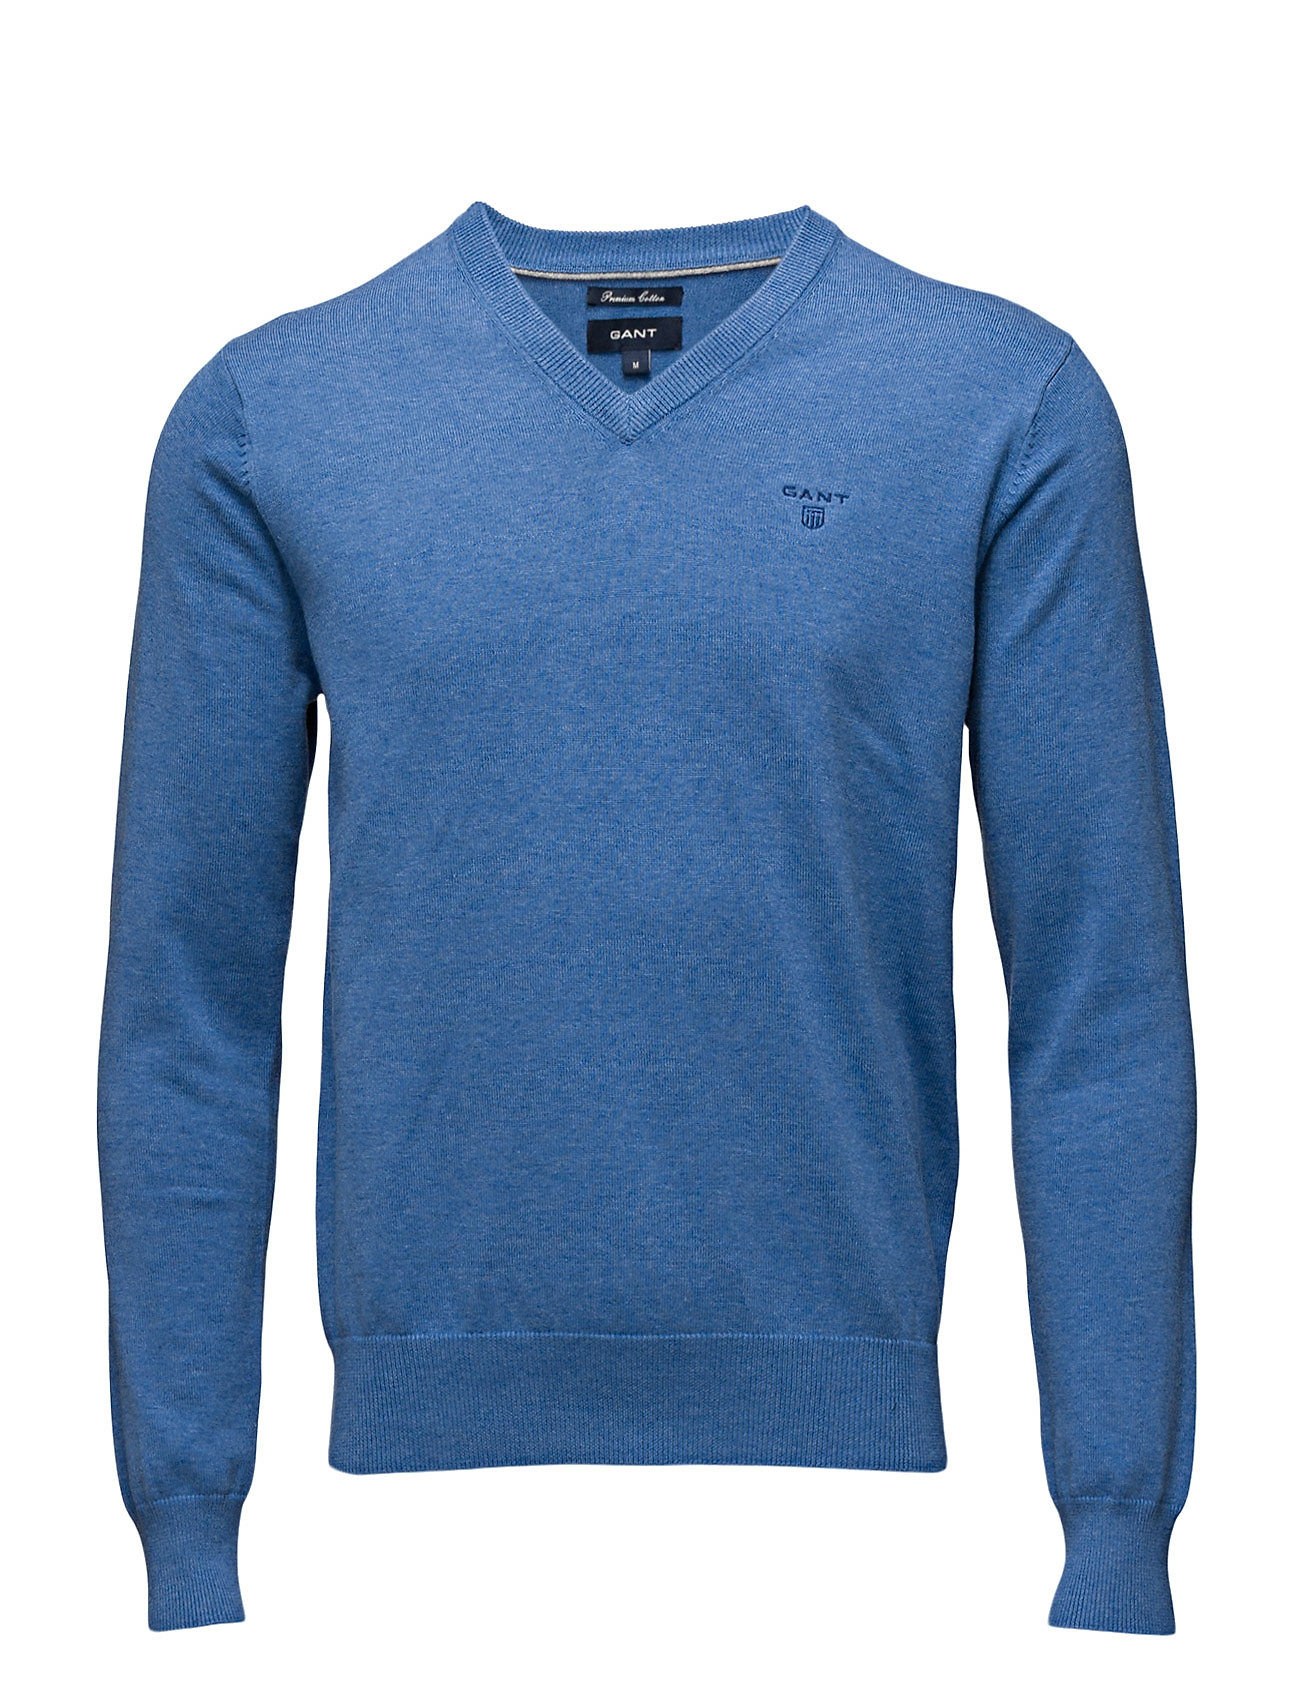 GANT LIGHT WEIGHT COTTON V-NECK - BLUE MELANGE